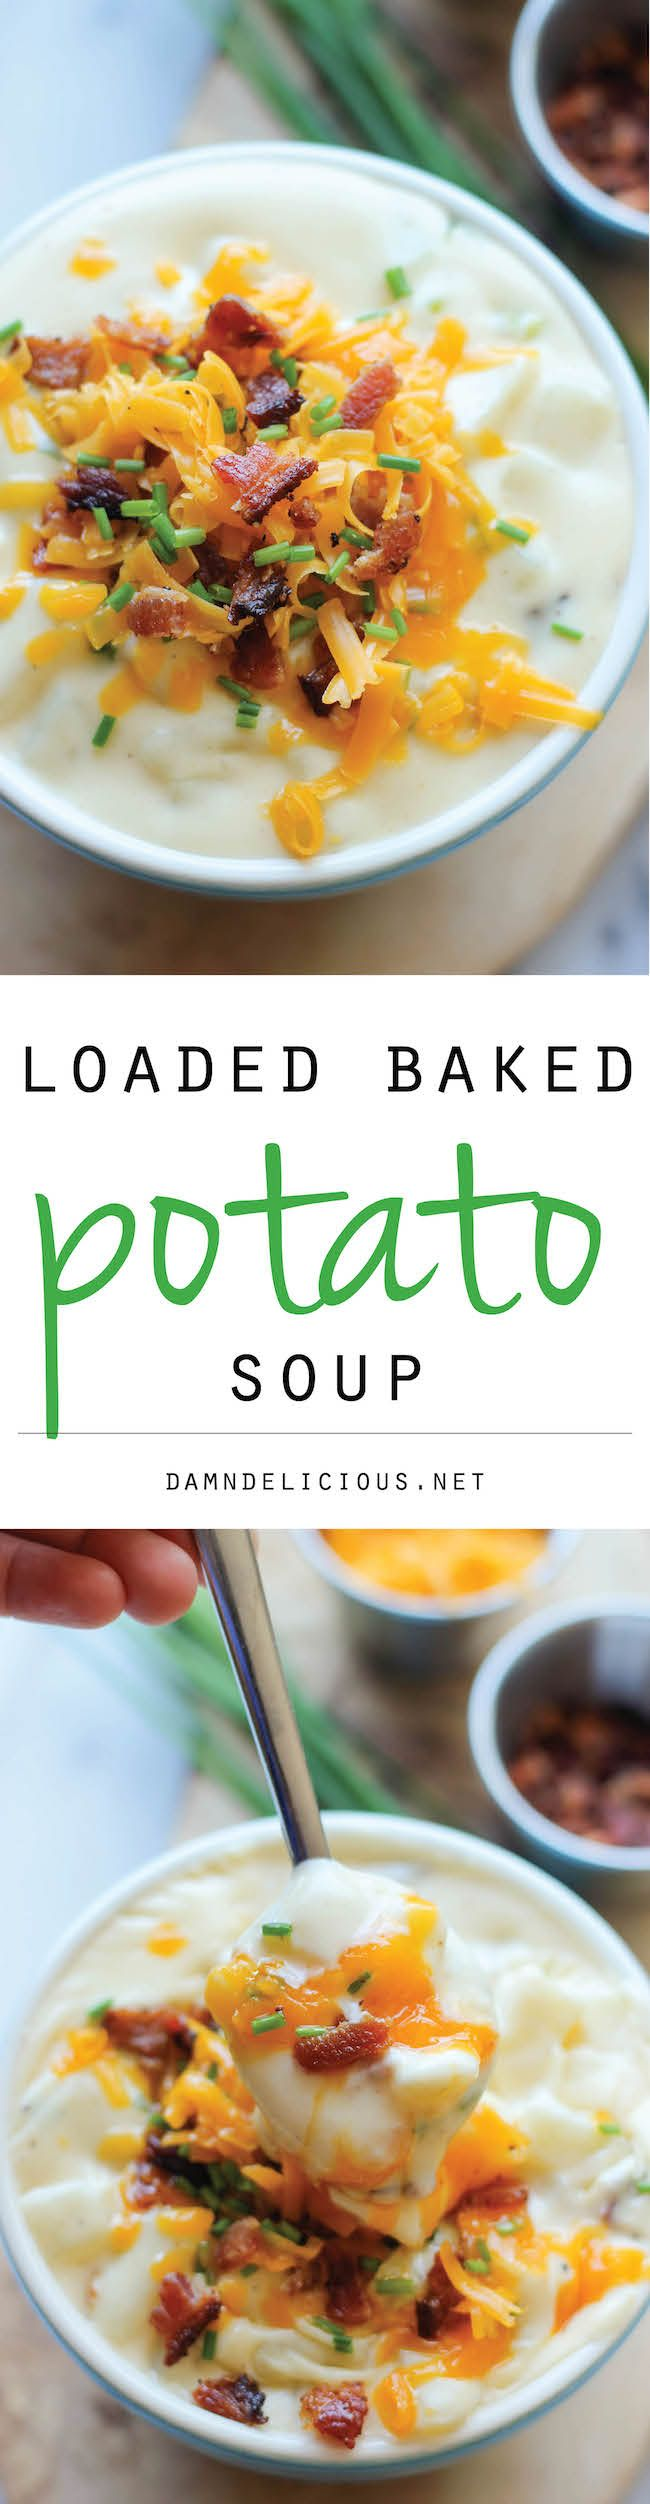 Loaded Baked Potato #Soup - All the flavours of a loaded #baked potato comes together in this comforting soup!